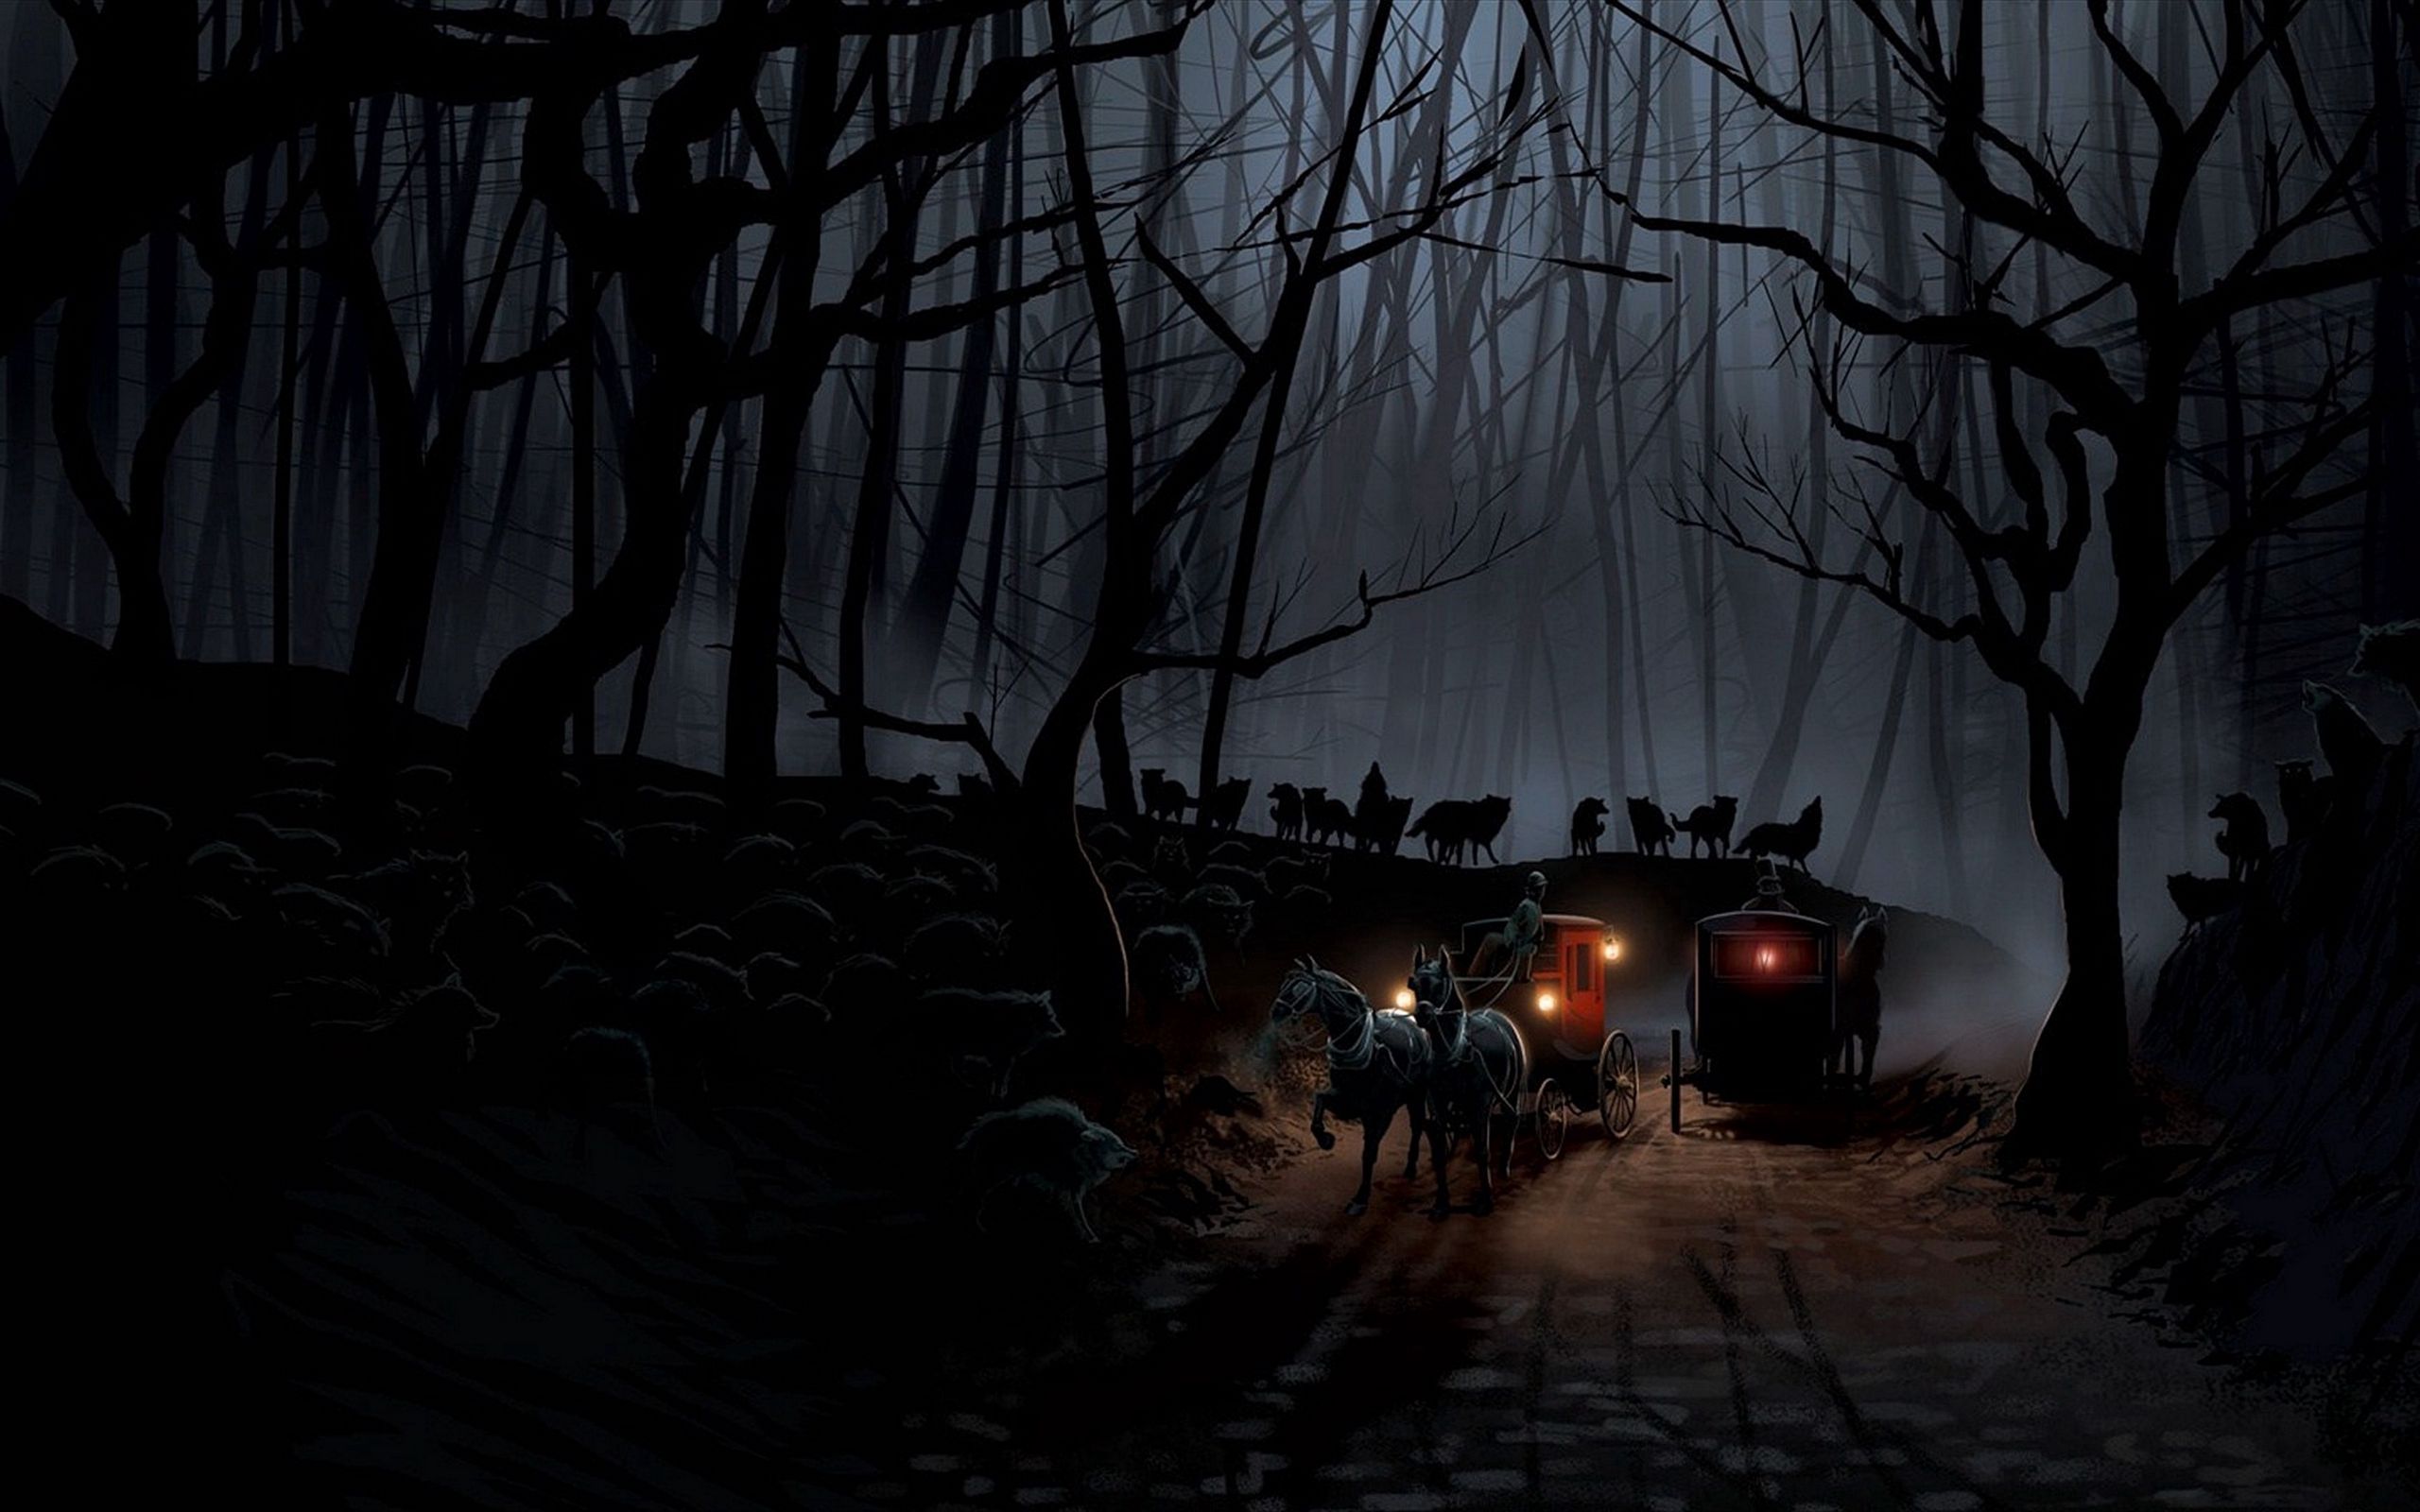 2560x1600 Wallpaper carriage, wood, night, wolves, flight